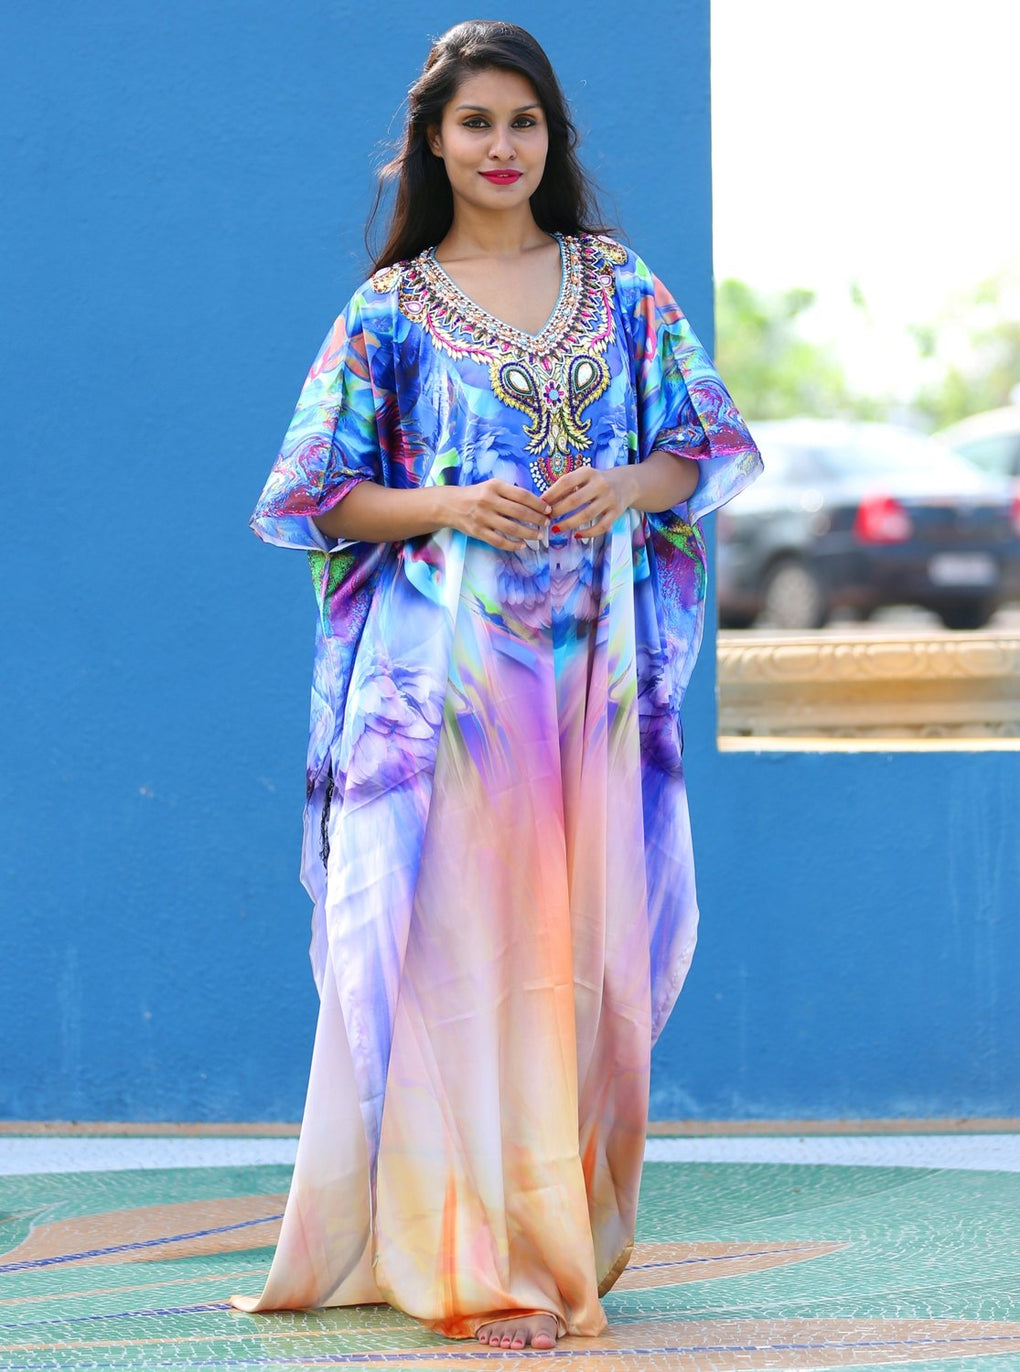 Silk looks and feel kaftan one piece dress on sale/jeweled/handmade/caftan beach cover up hot look luxuries Resort party kaftan 85 - Silk kaftan